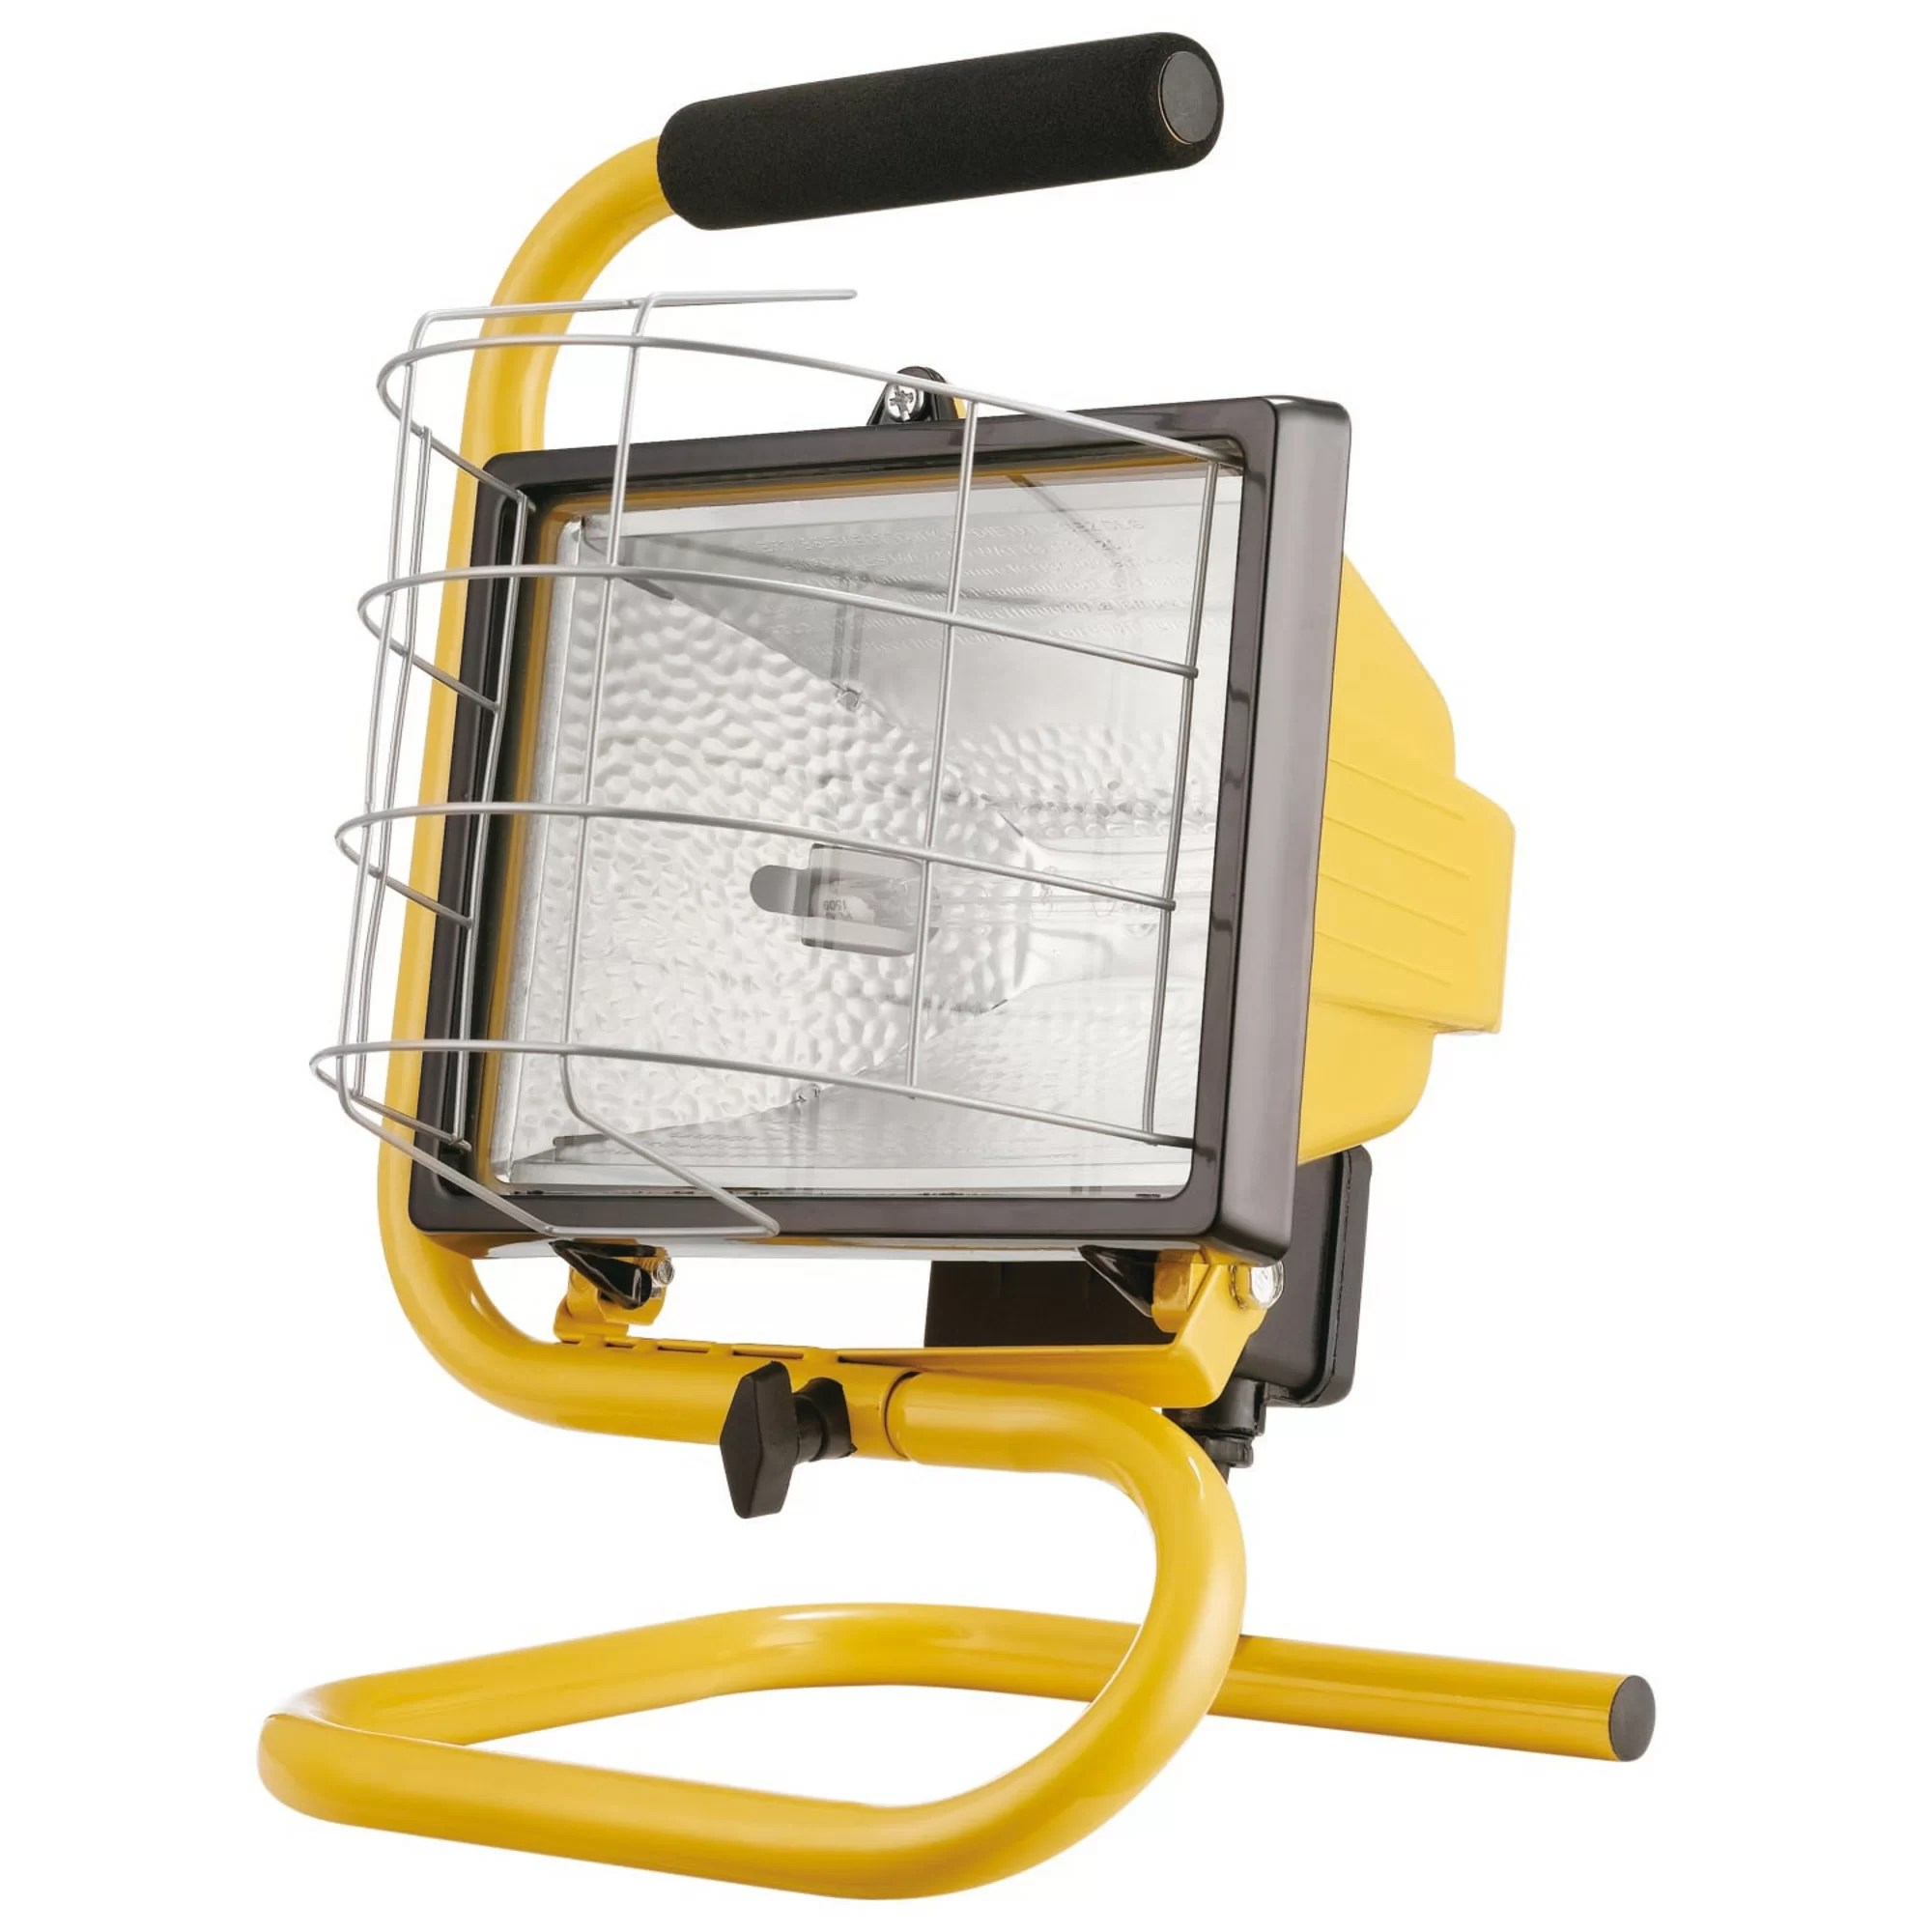 Portable Lights Globe Electric Company 500w Portable Halogen Yellow Work